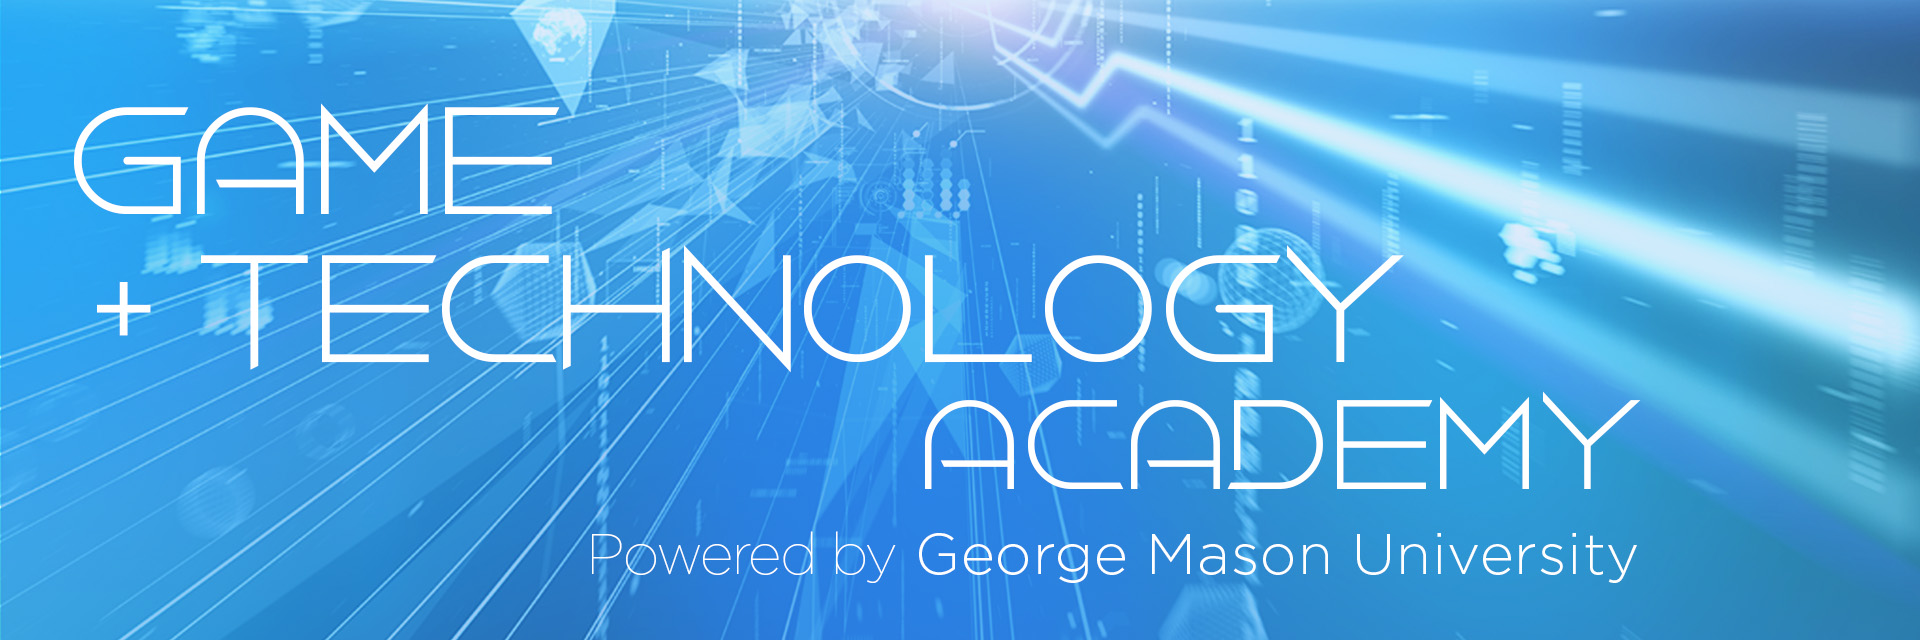 technology and academics